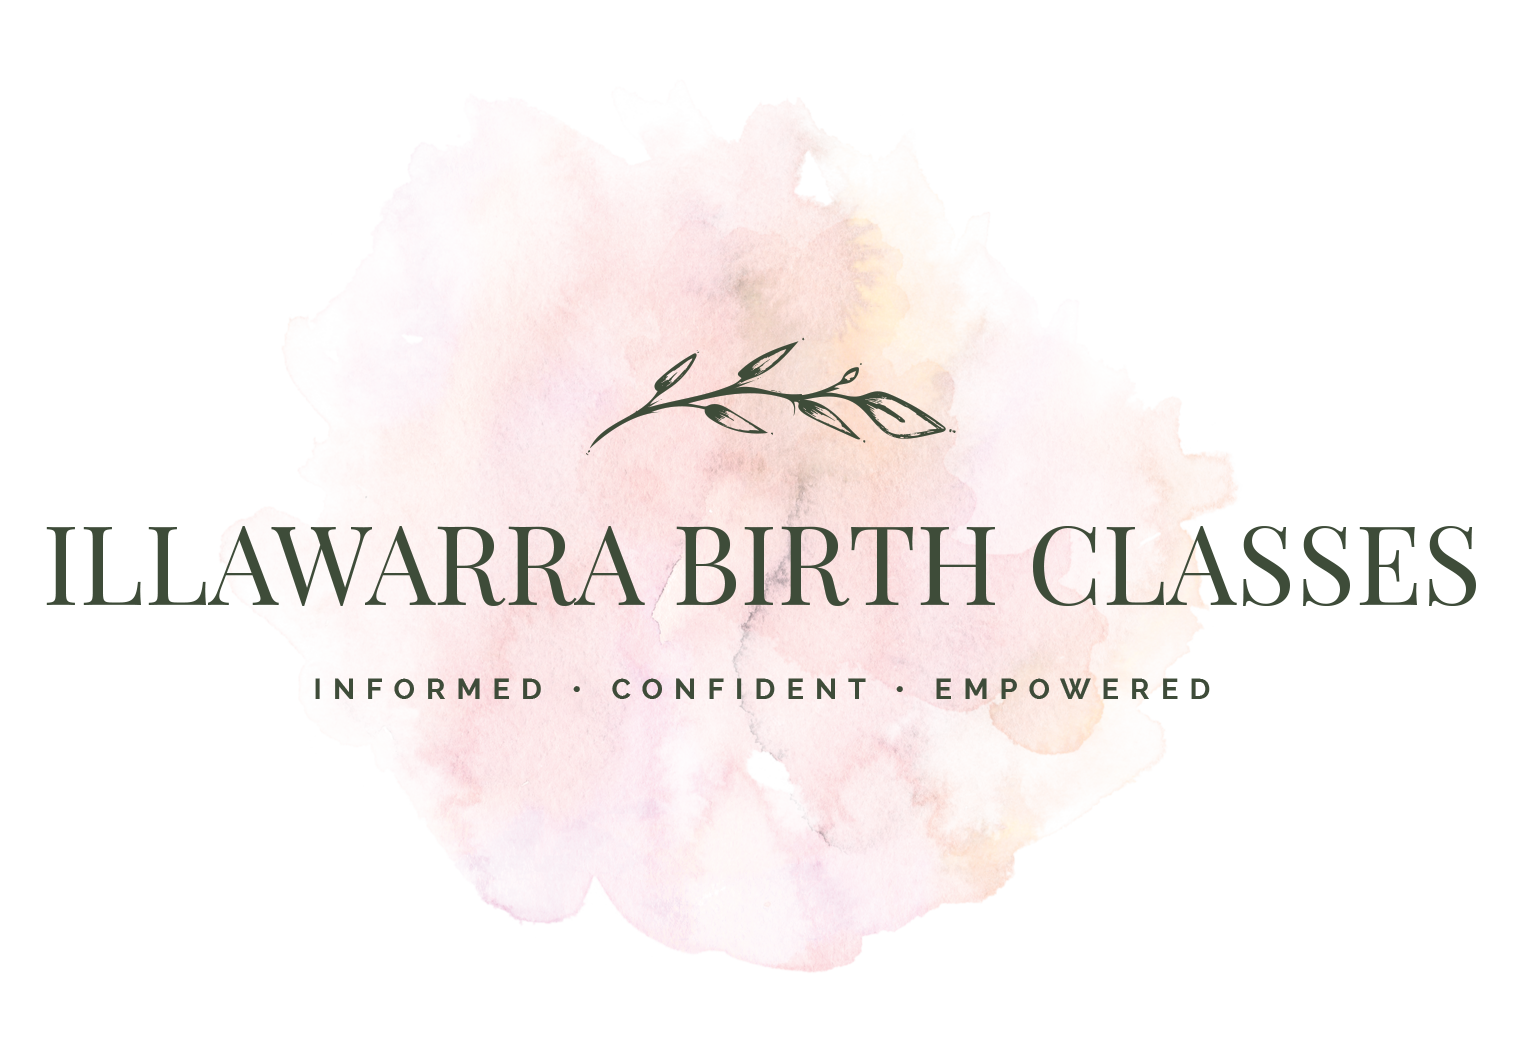 Childbirth classes also available - Click here for more information